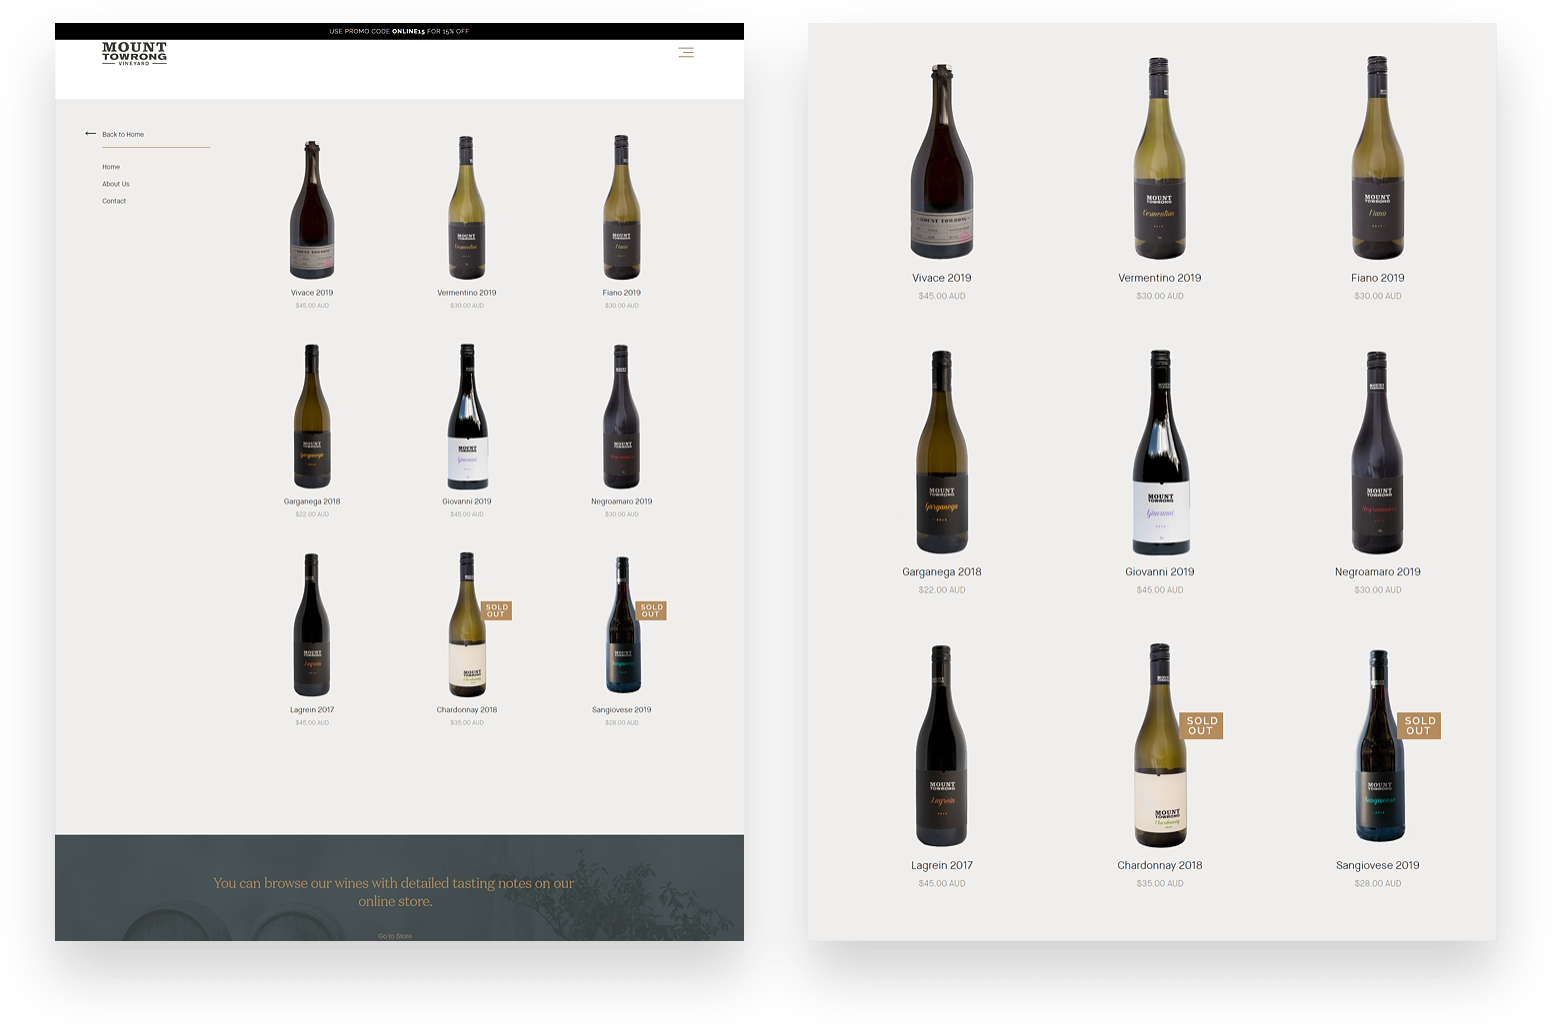 Mount Towrong Vineyard demo product image.